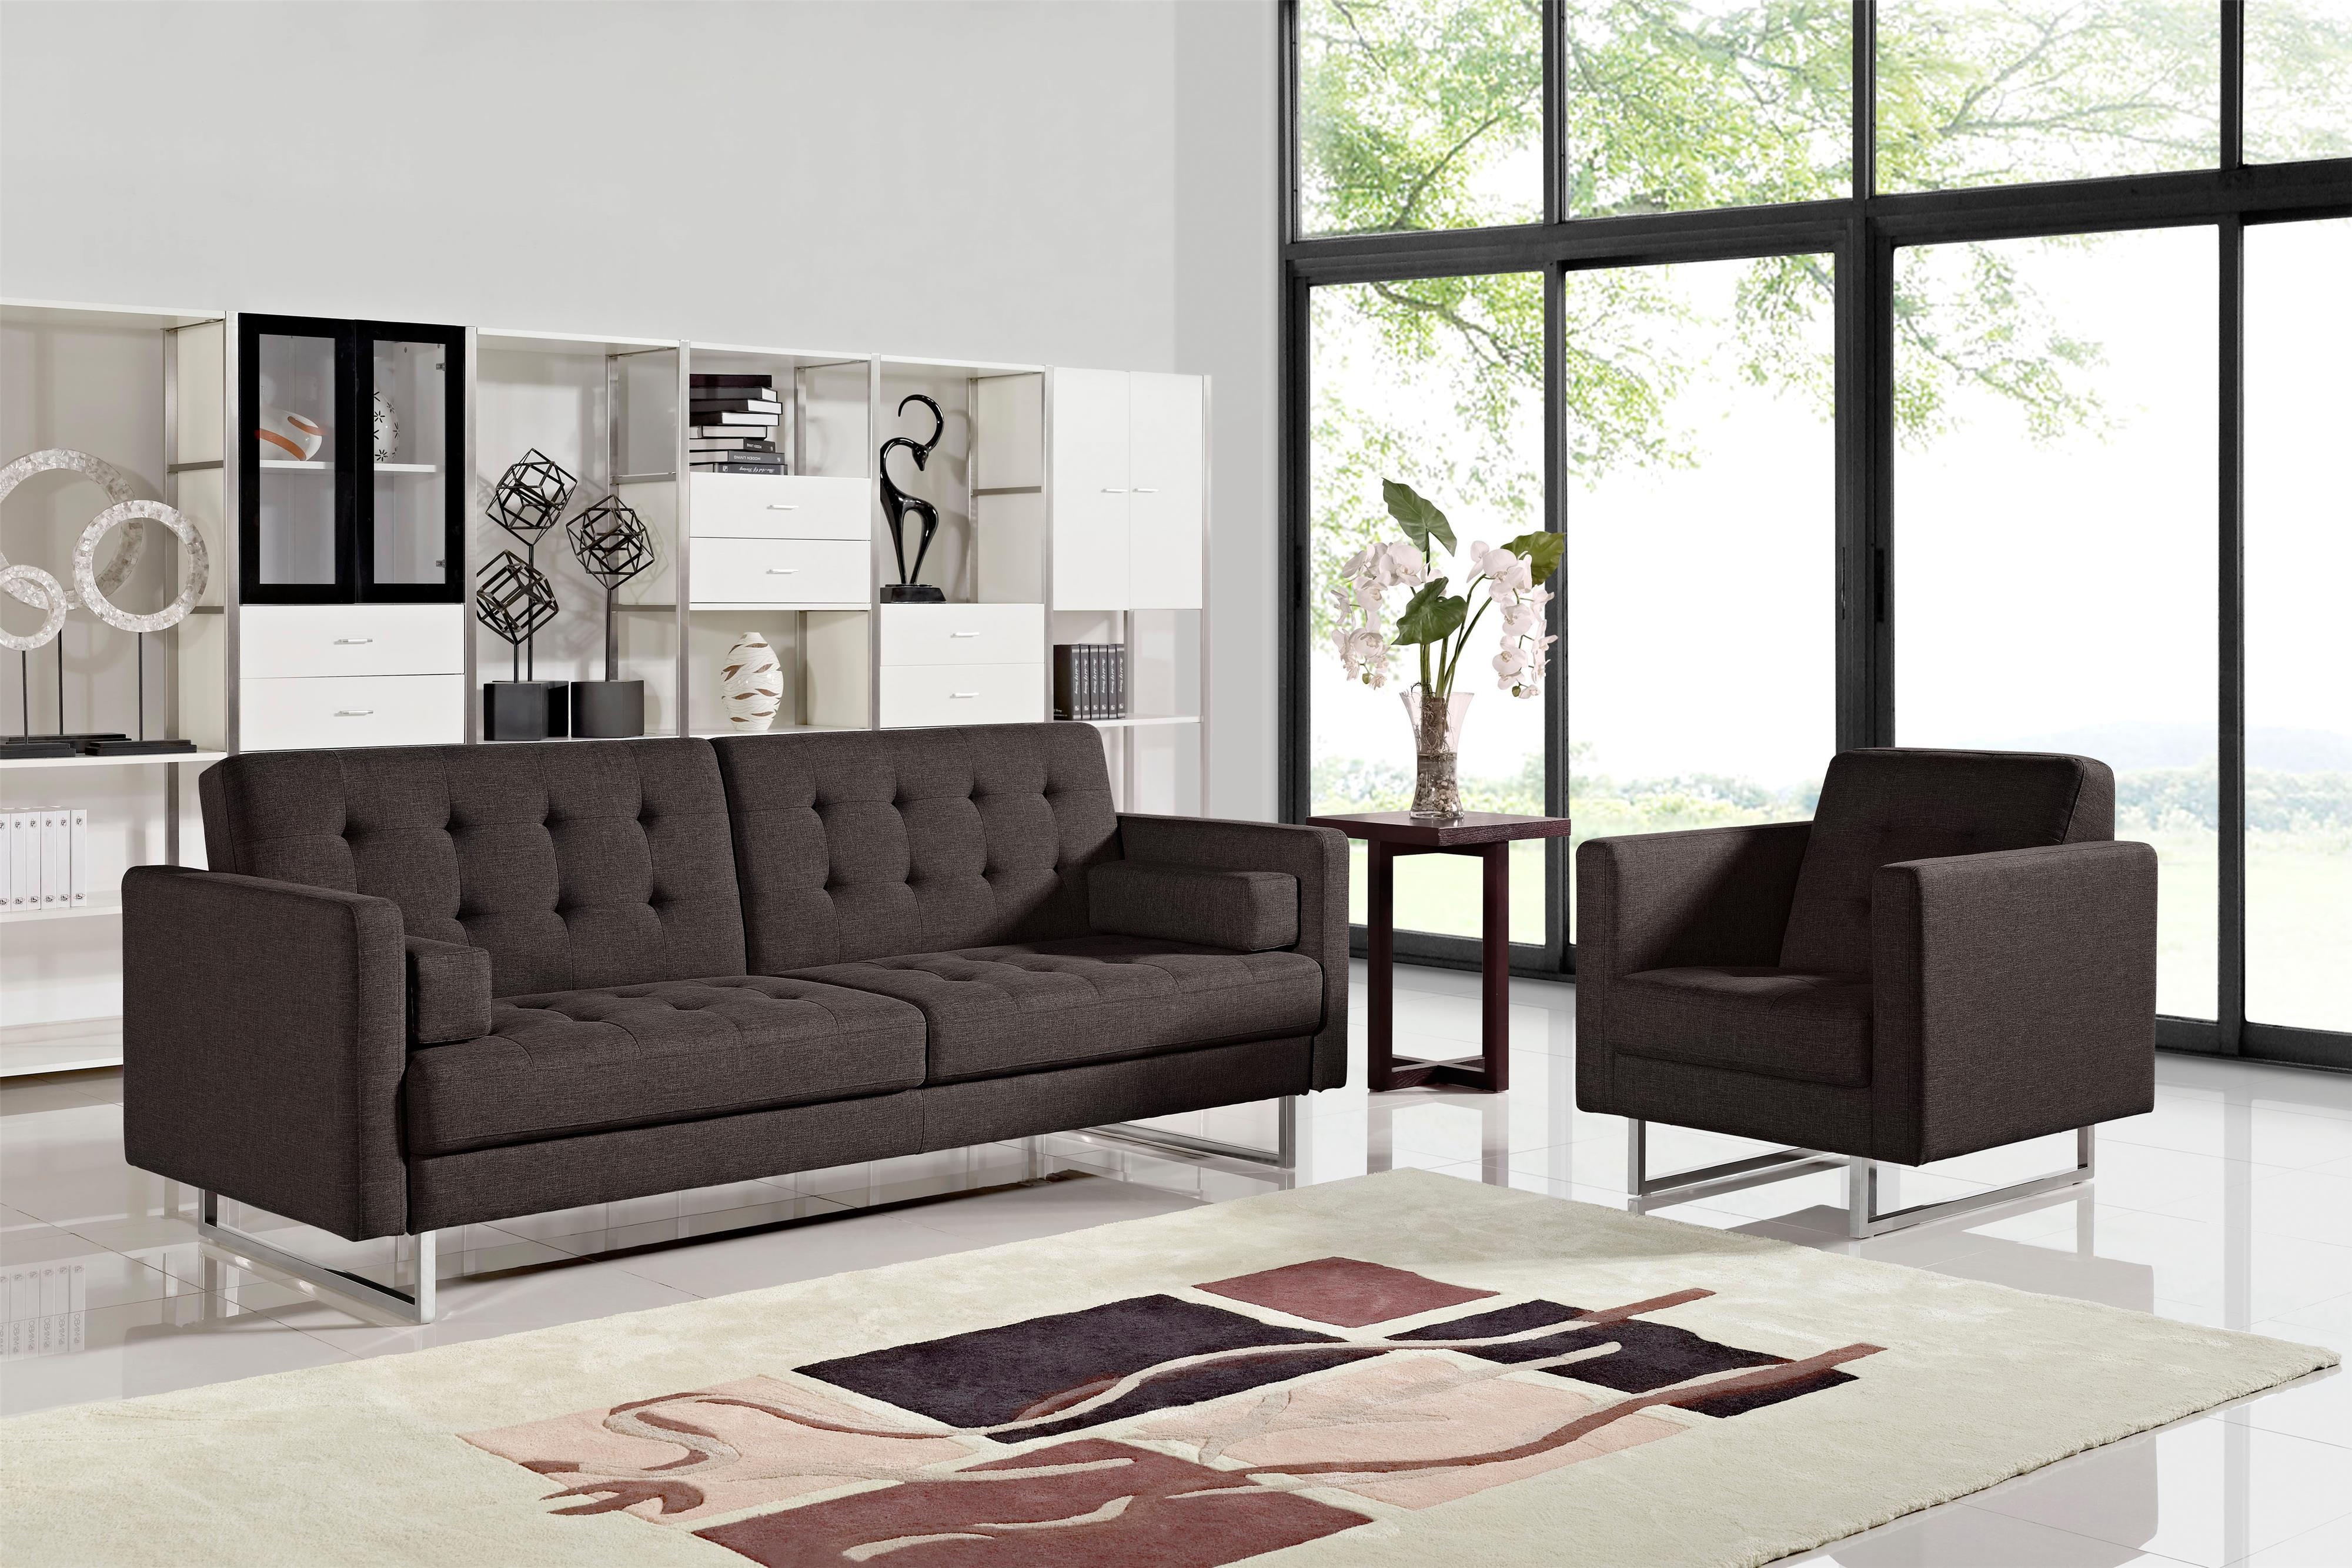 Diamond Sofa Opus Grey Tufted Polyester Fabric Chair   Michaelu0027s Furniture  Warehouse   Upholstered Chairs